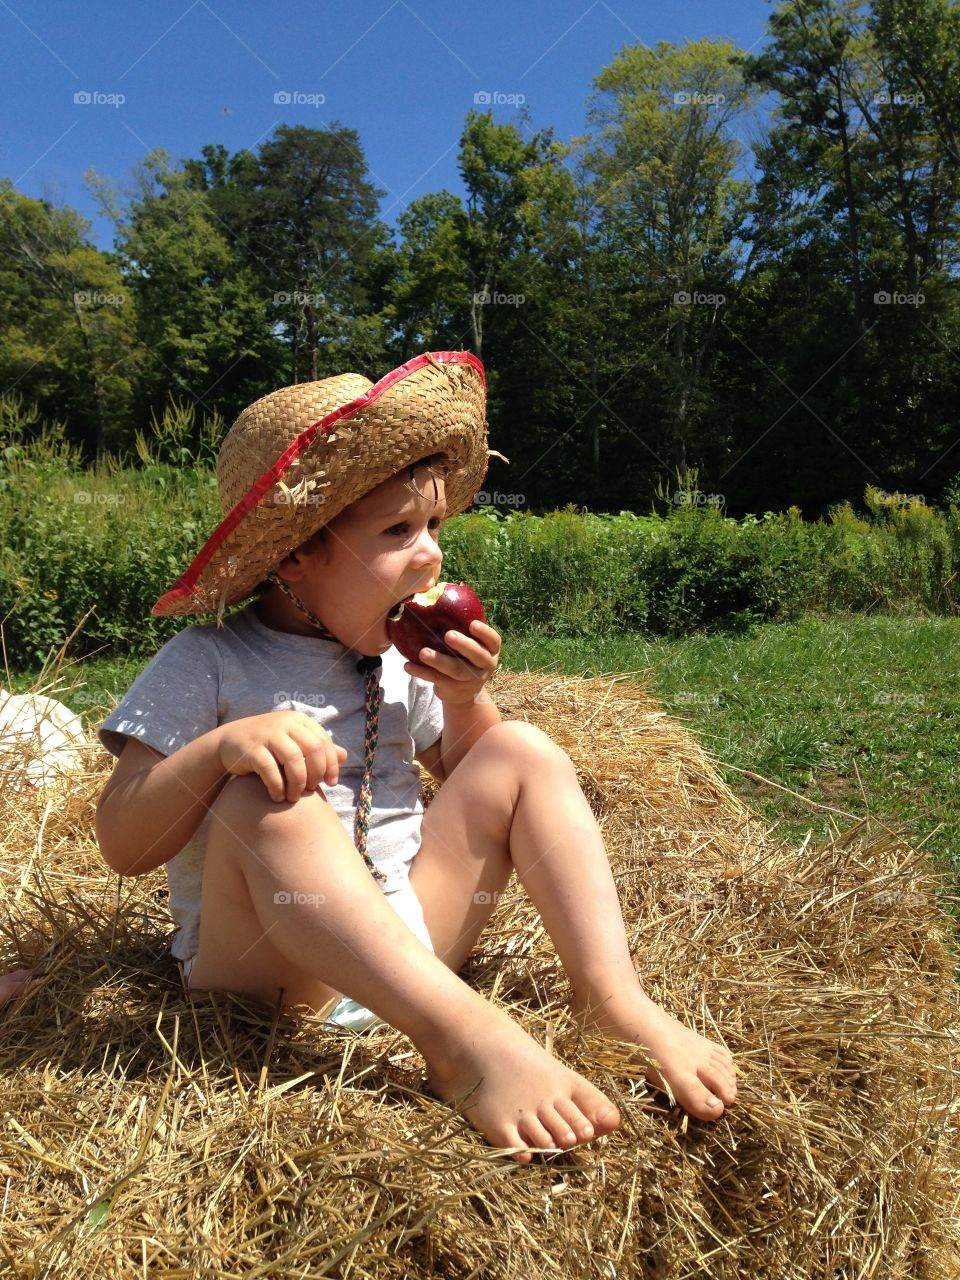 View of young boy sitting on hay eating apple